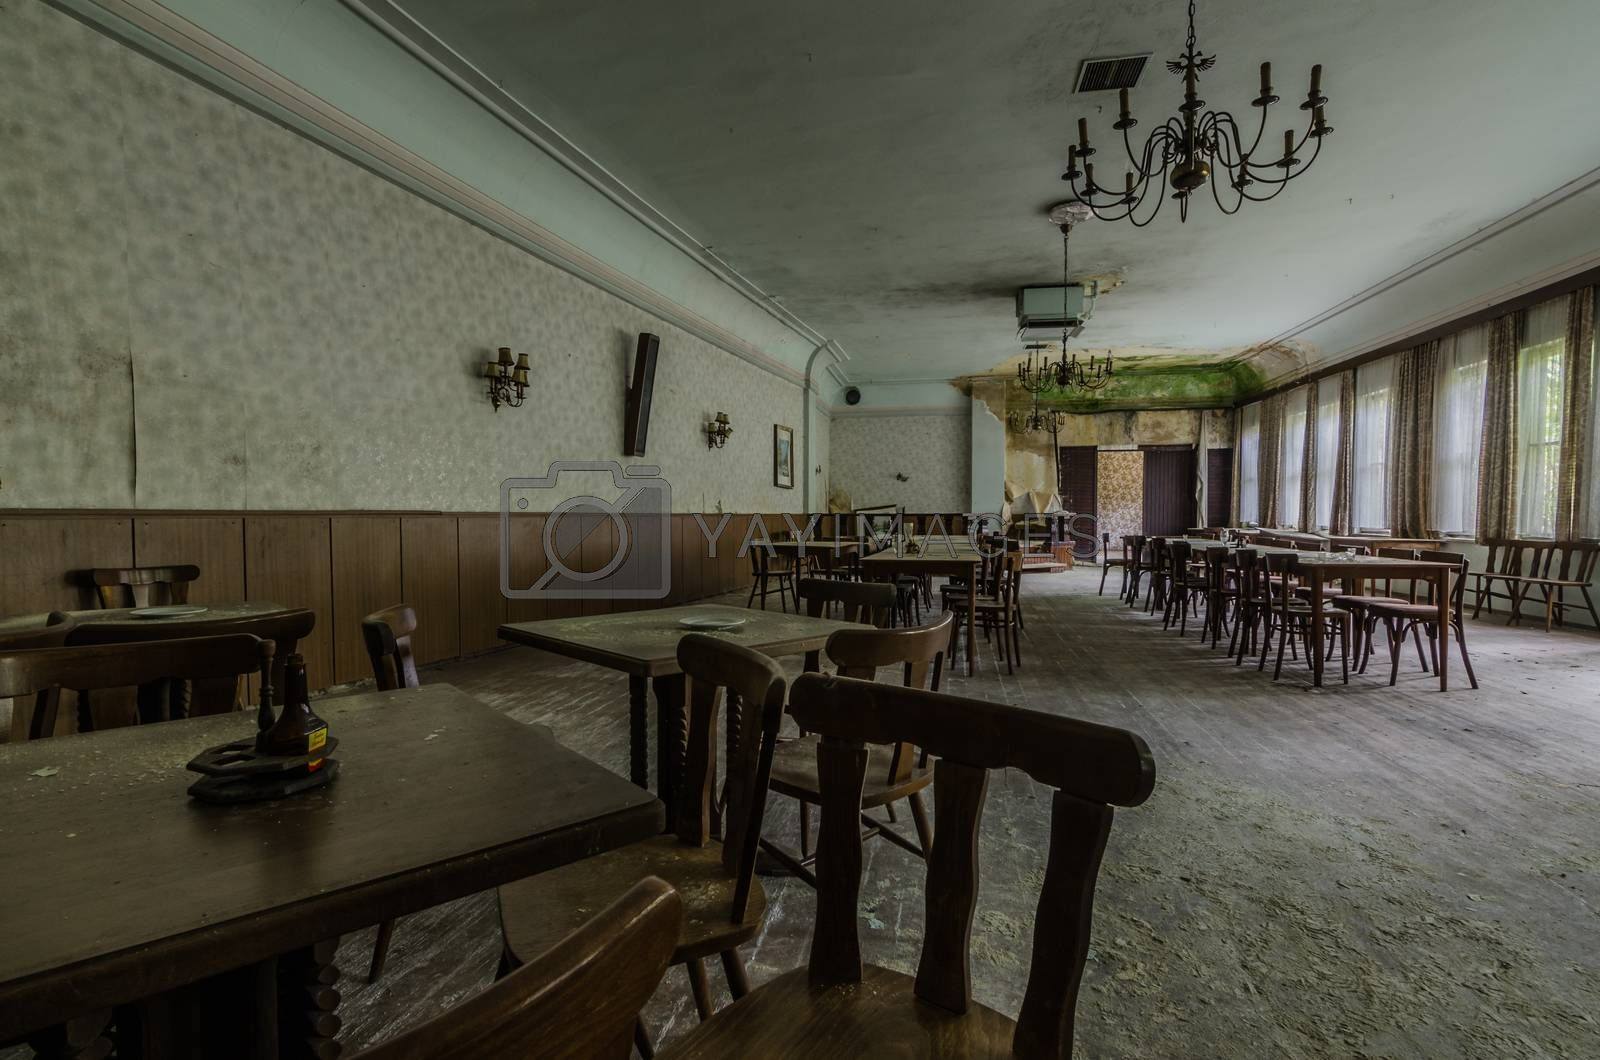 abandoned ballroom with tables and armchairs in a guest house